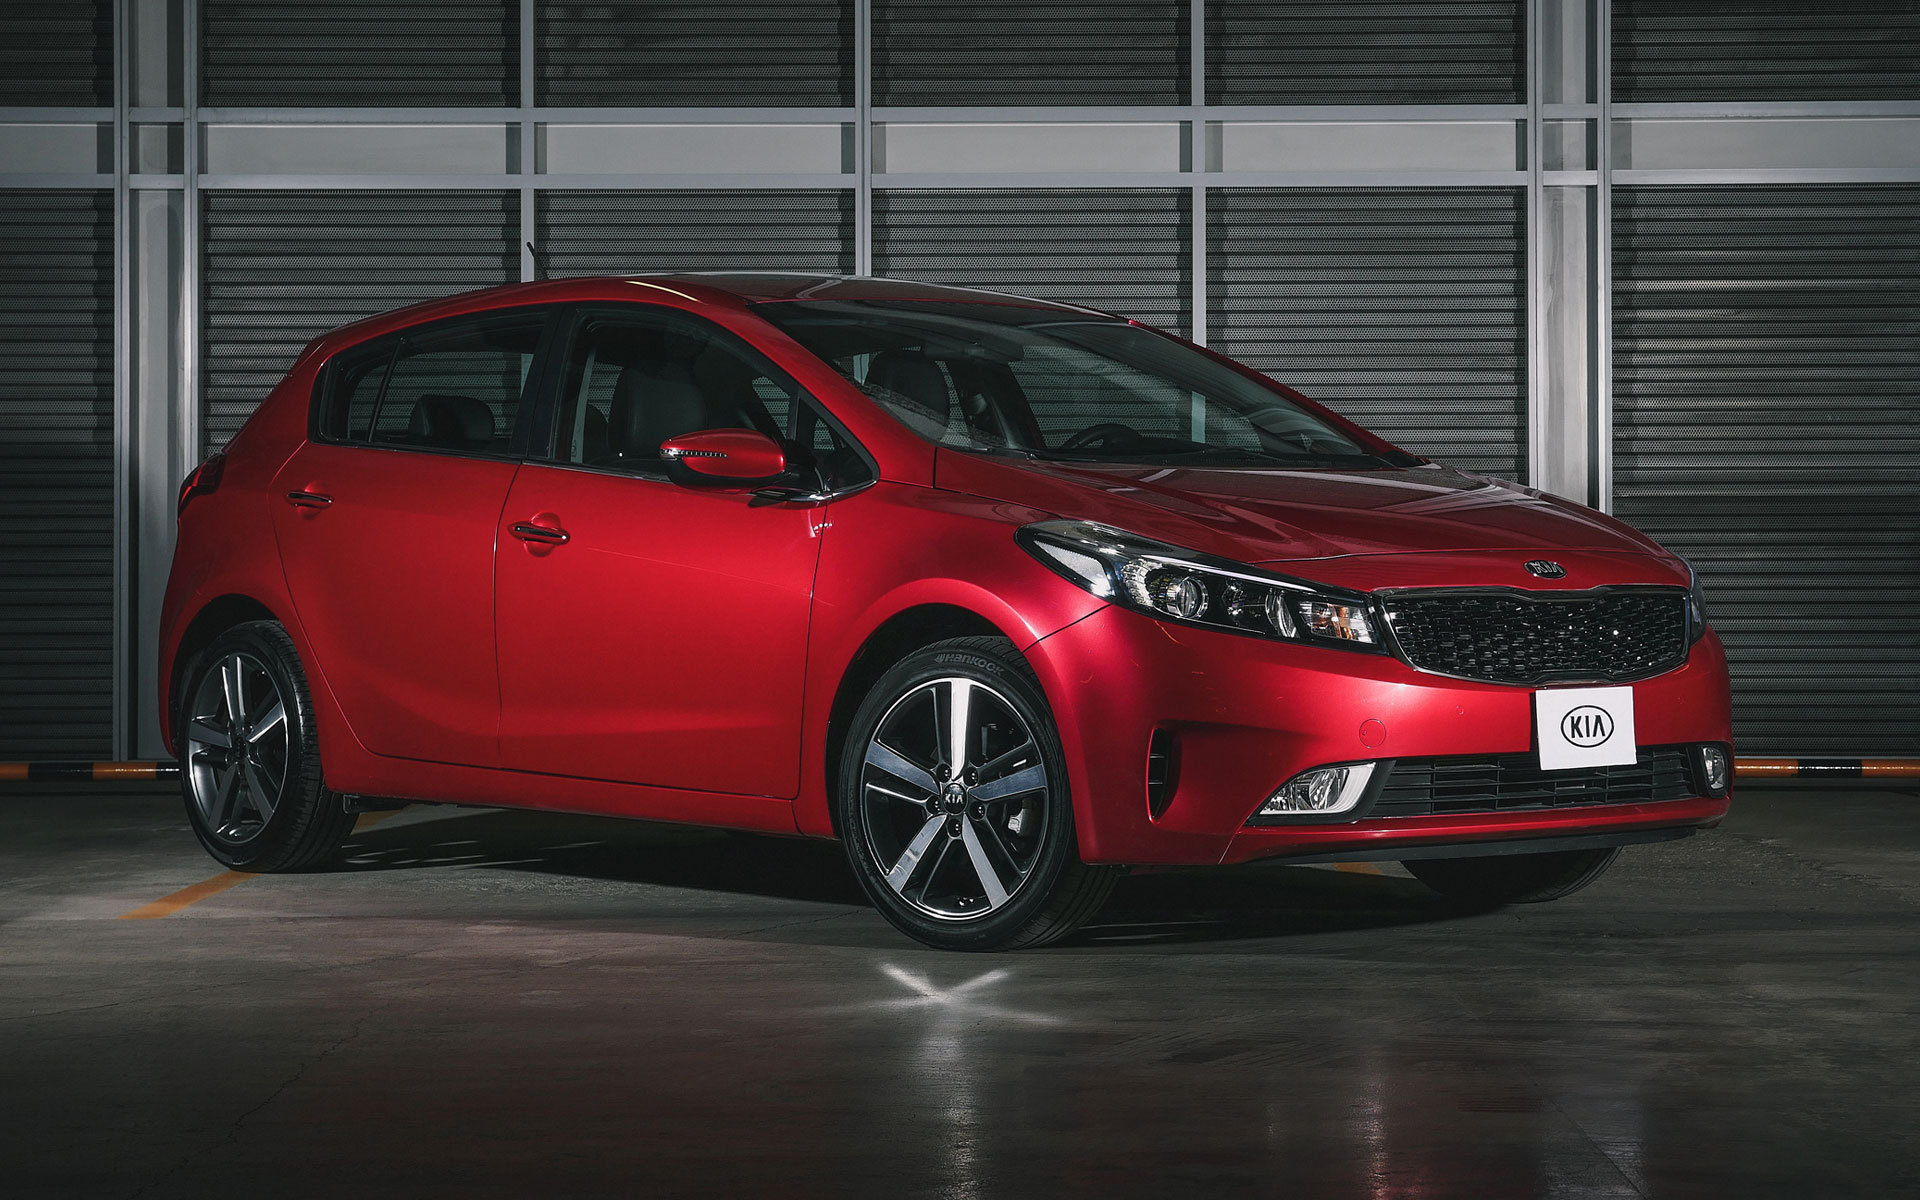 kia forte hatchback 2017 ya a la venta en m xico autos actual m xico. Black Bedroom Furniture Sets. Home Design Ideas